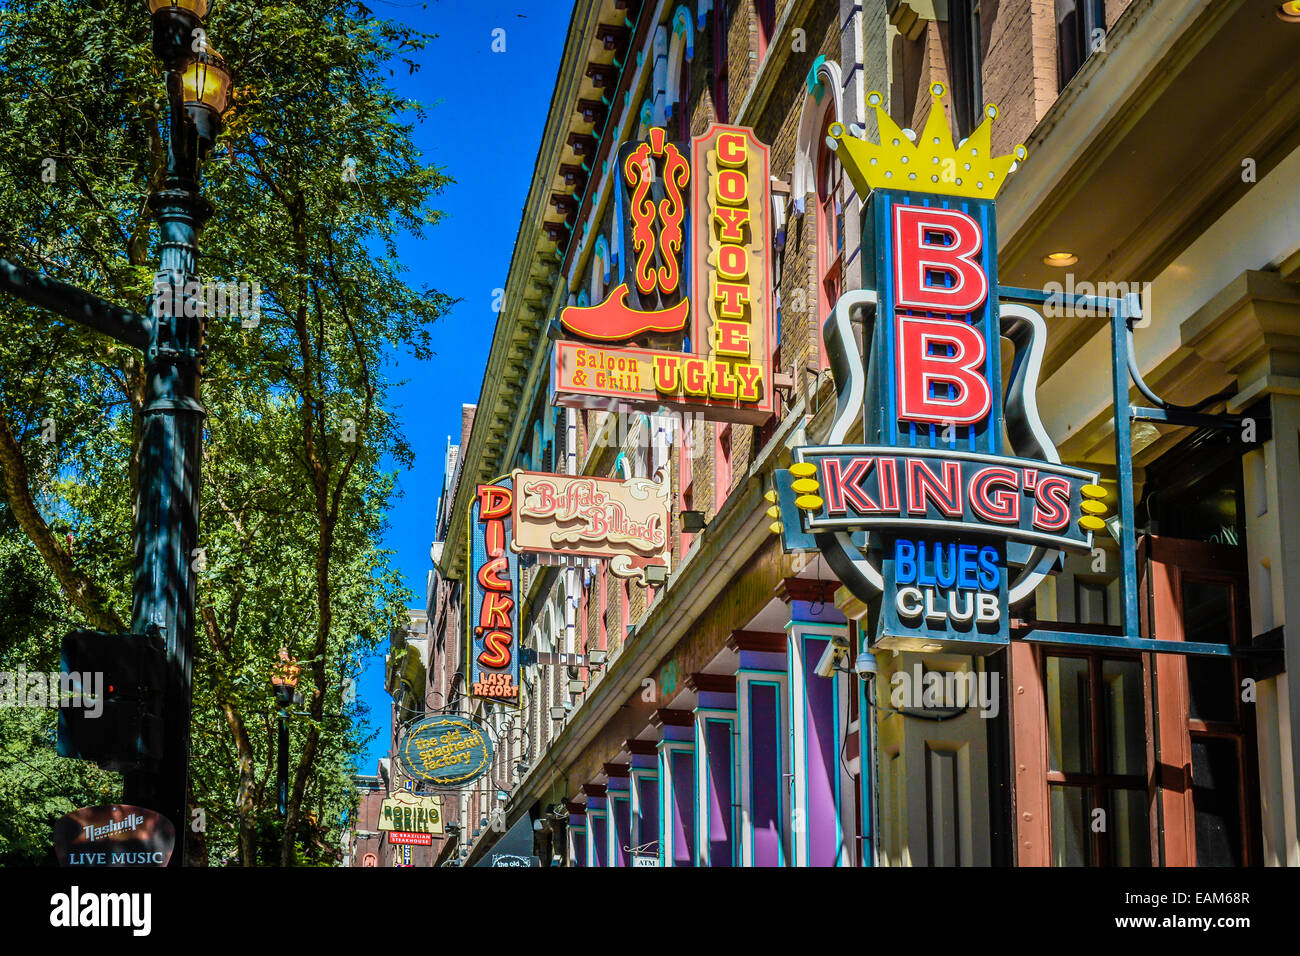 Merchants Nashville Bb King 39s Blues Club On 2nd Avenue North In Downtown